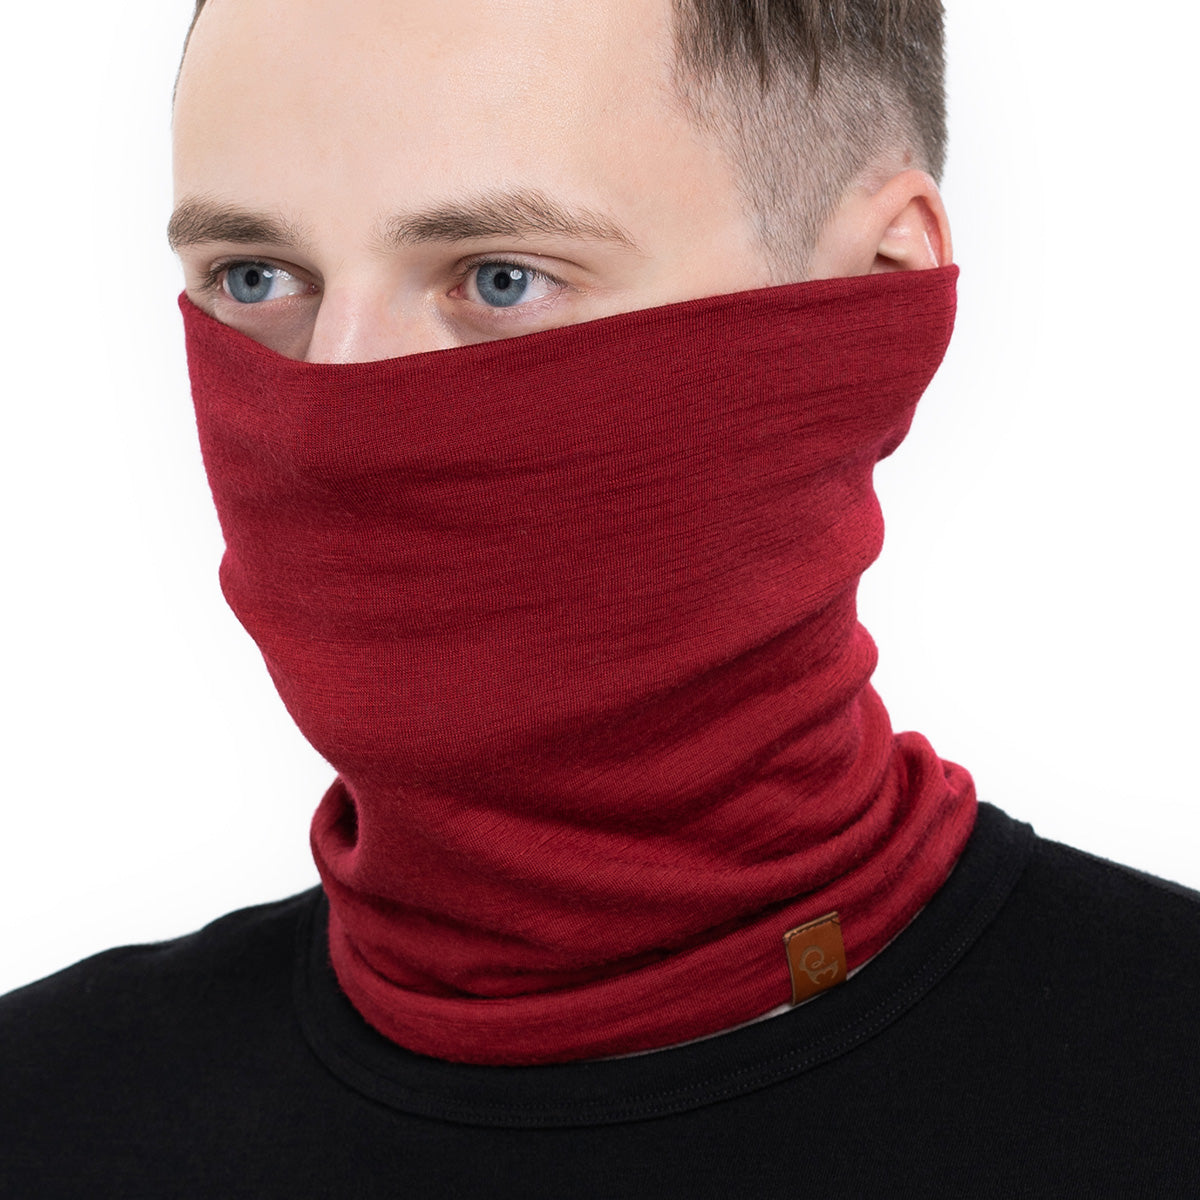 menique Men's Merino Neck Gaiter Royal Cherry Color